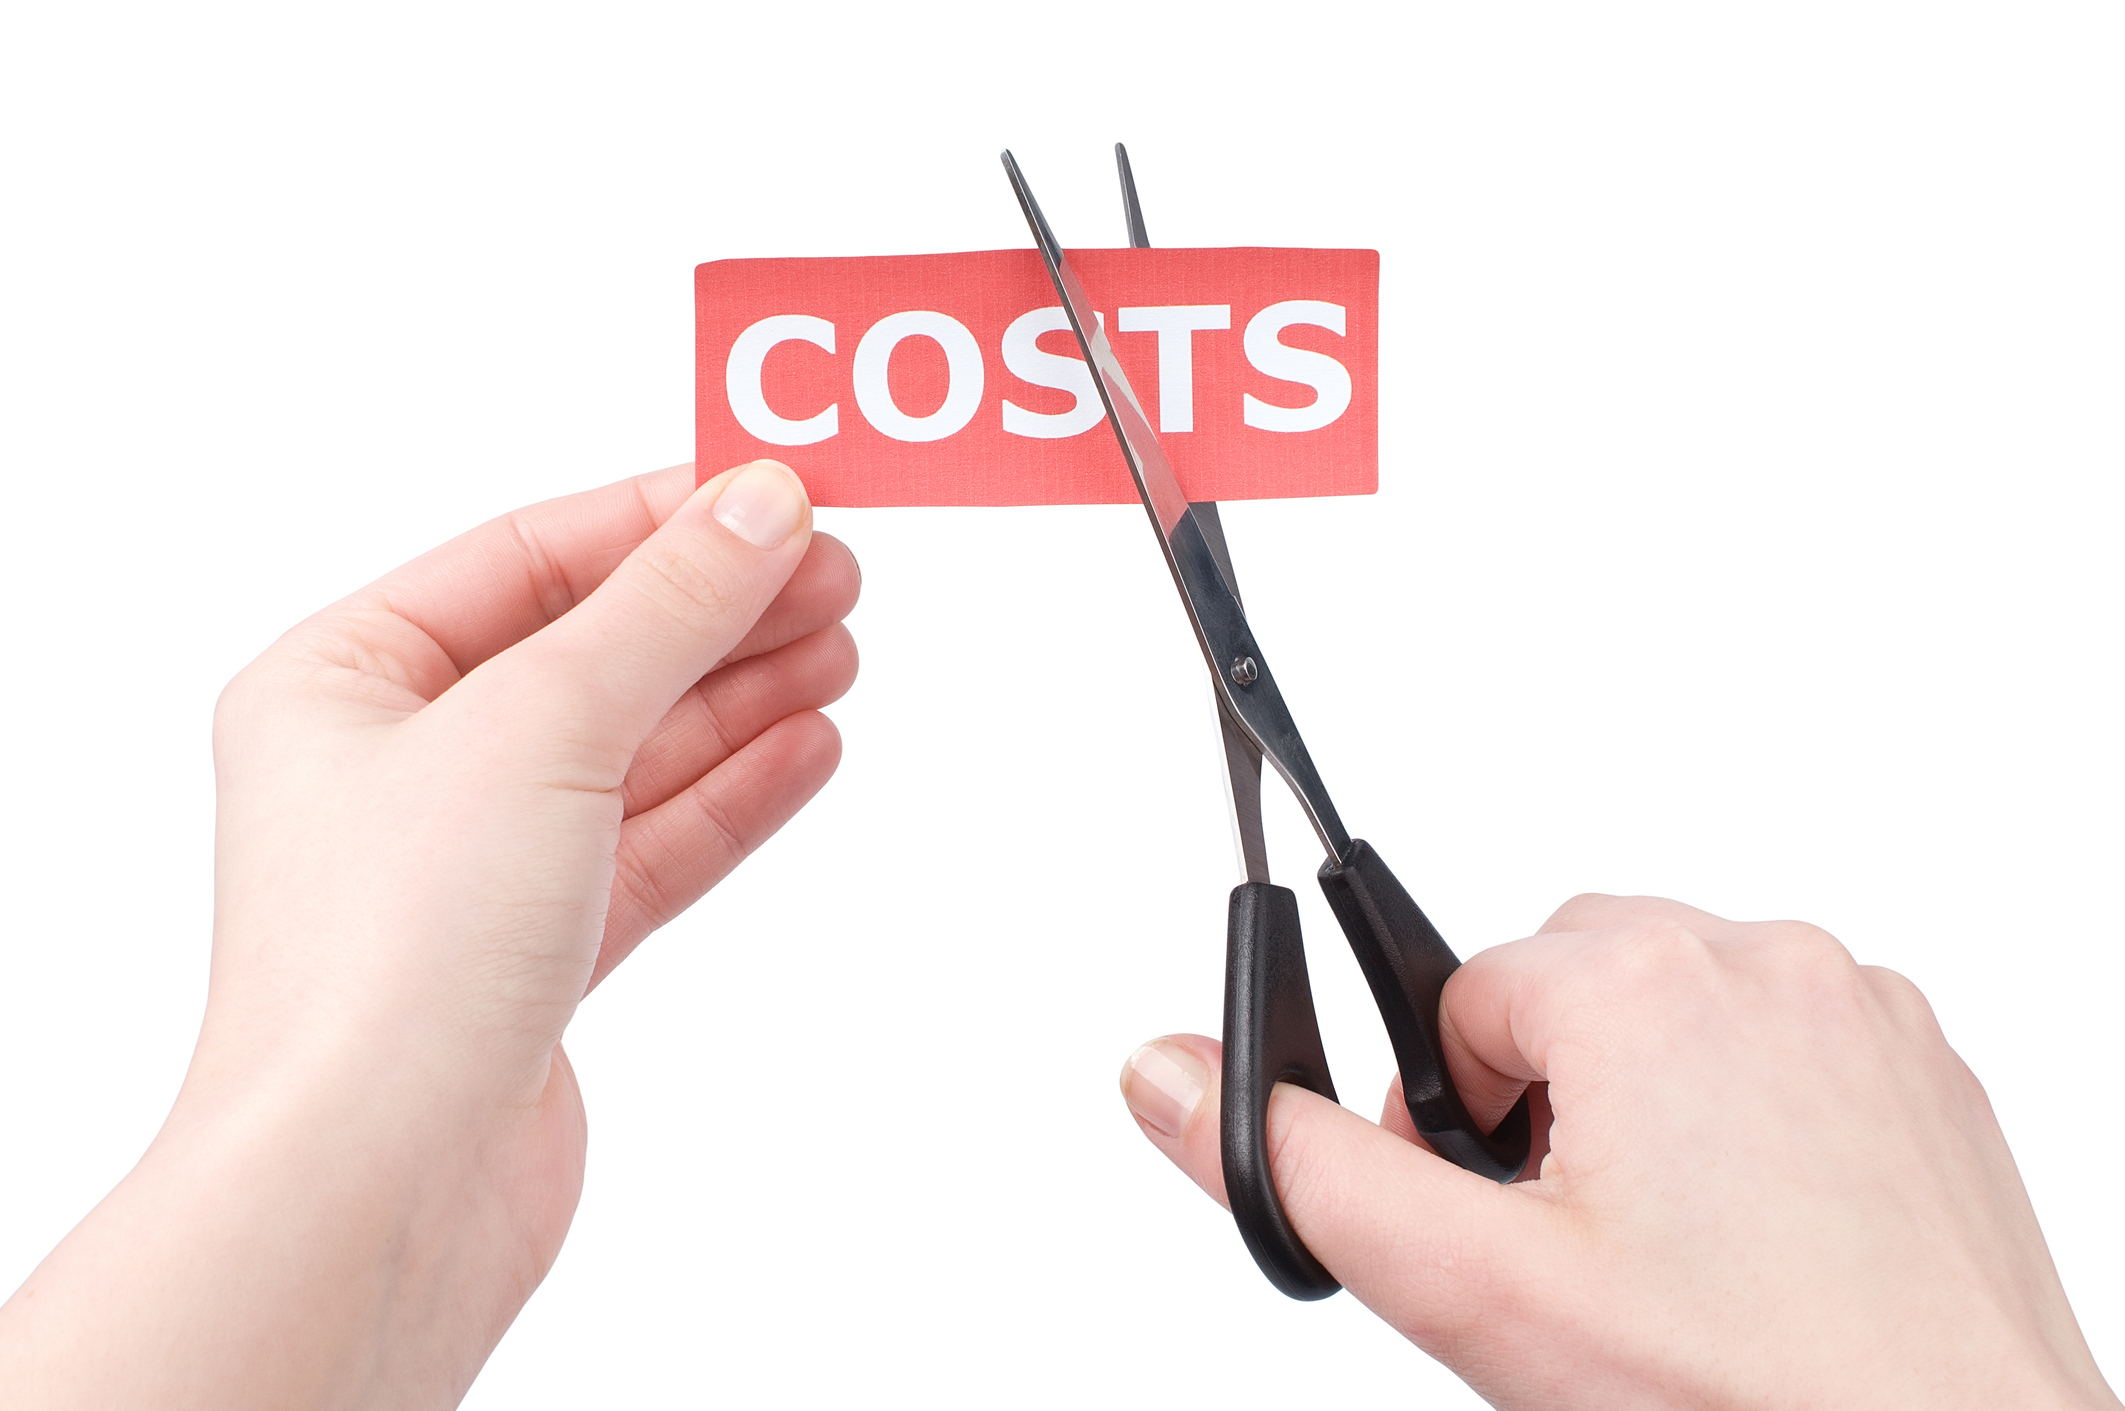 Painless ways to cut monthly costs